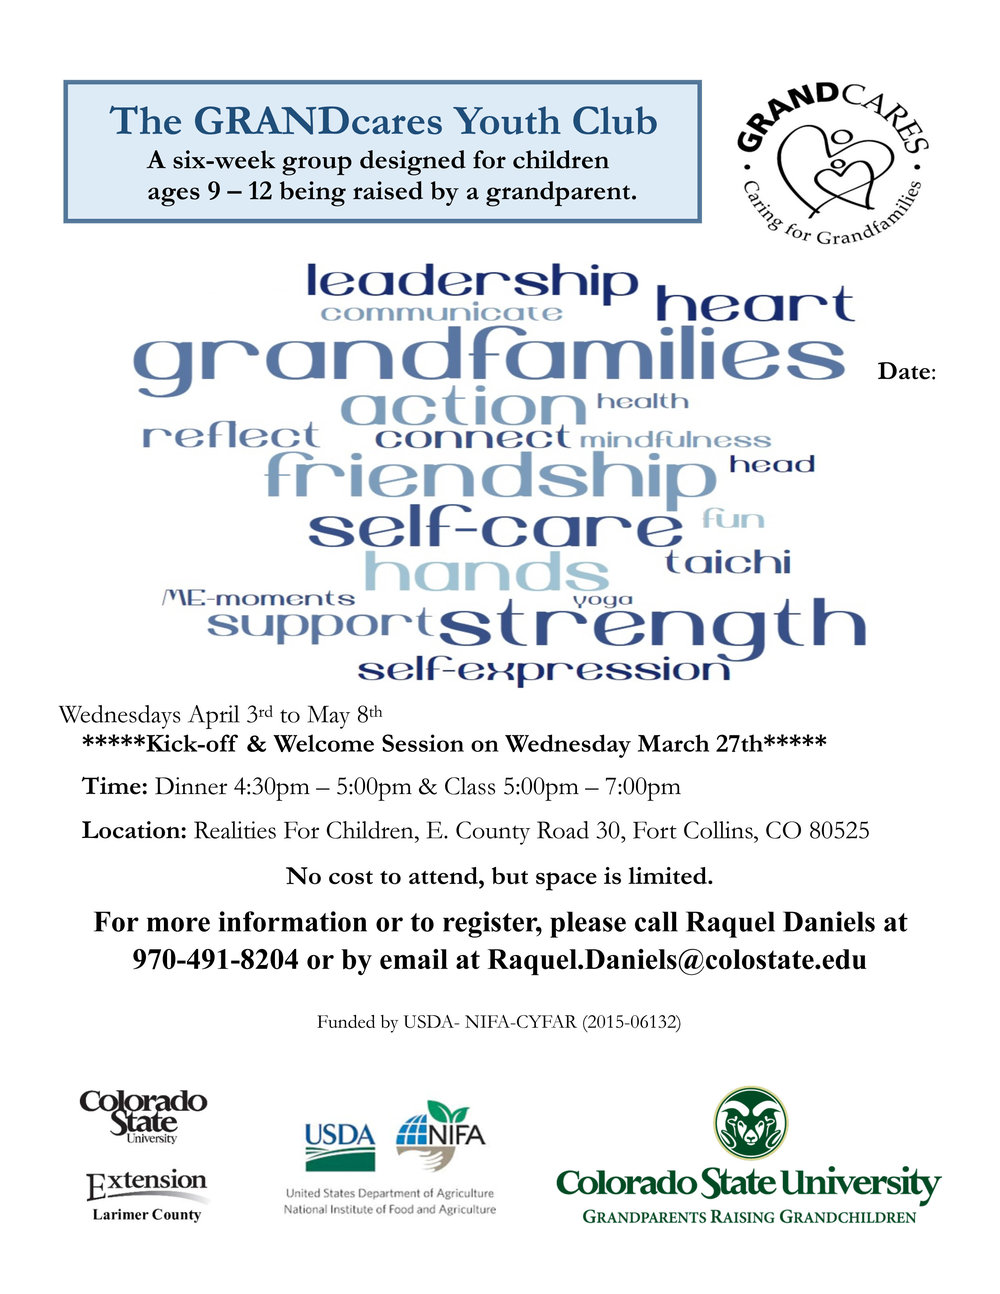 GRANDcares Youth Club_Larimer_Spring 2019 flyer.jpg